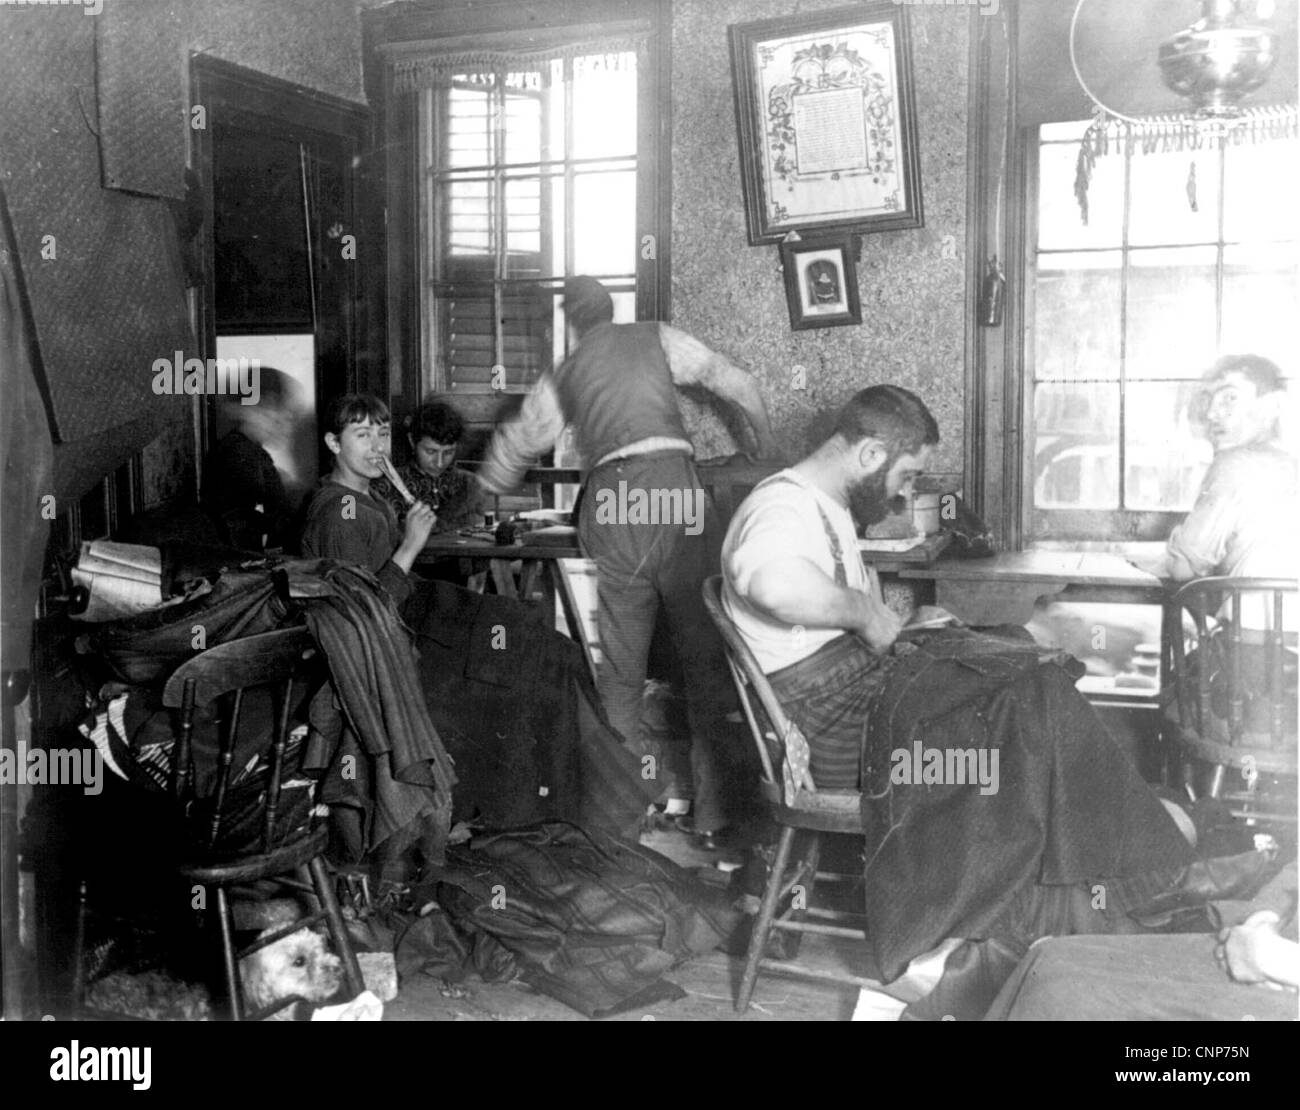 NEW YORK SWEATSHOP on Ludlow Road, NY, about 1905 - Stock Image